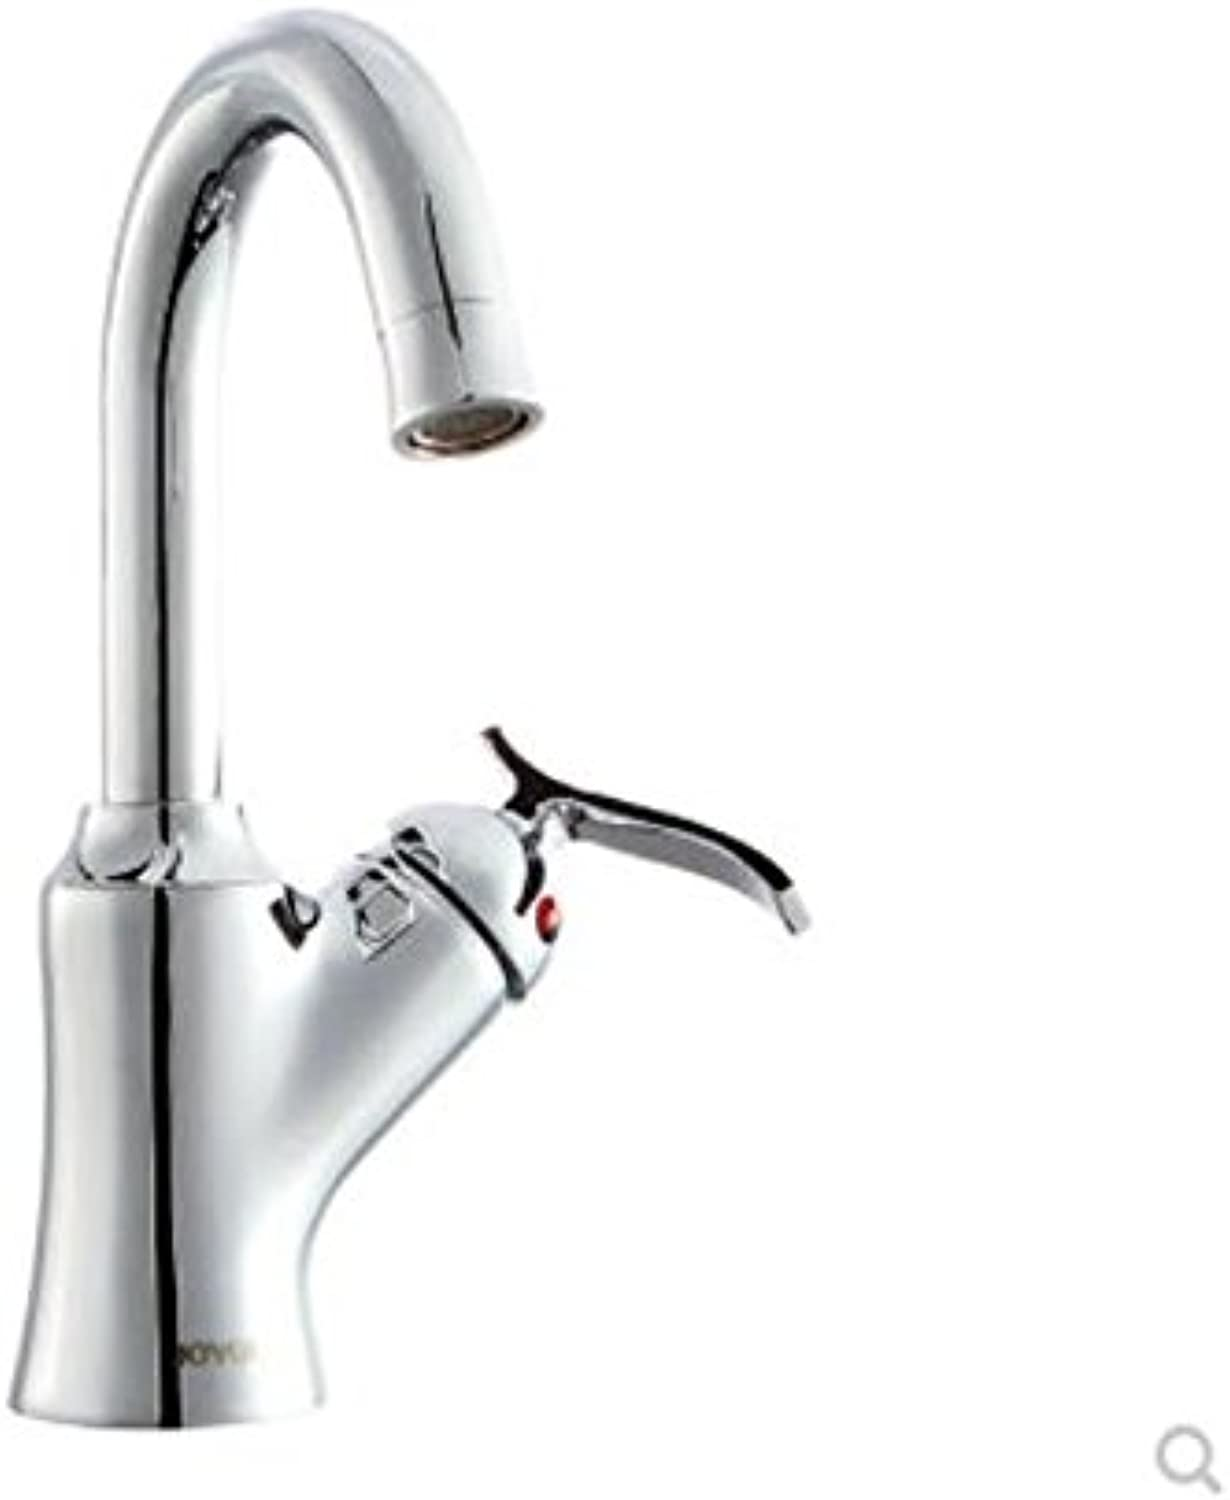 Decorry All Copper Single Hole Single Handle Shampoo Faucet Hot and Cold Water Tap Can redate Ceramic Bowl Faucet of Basin Head.